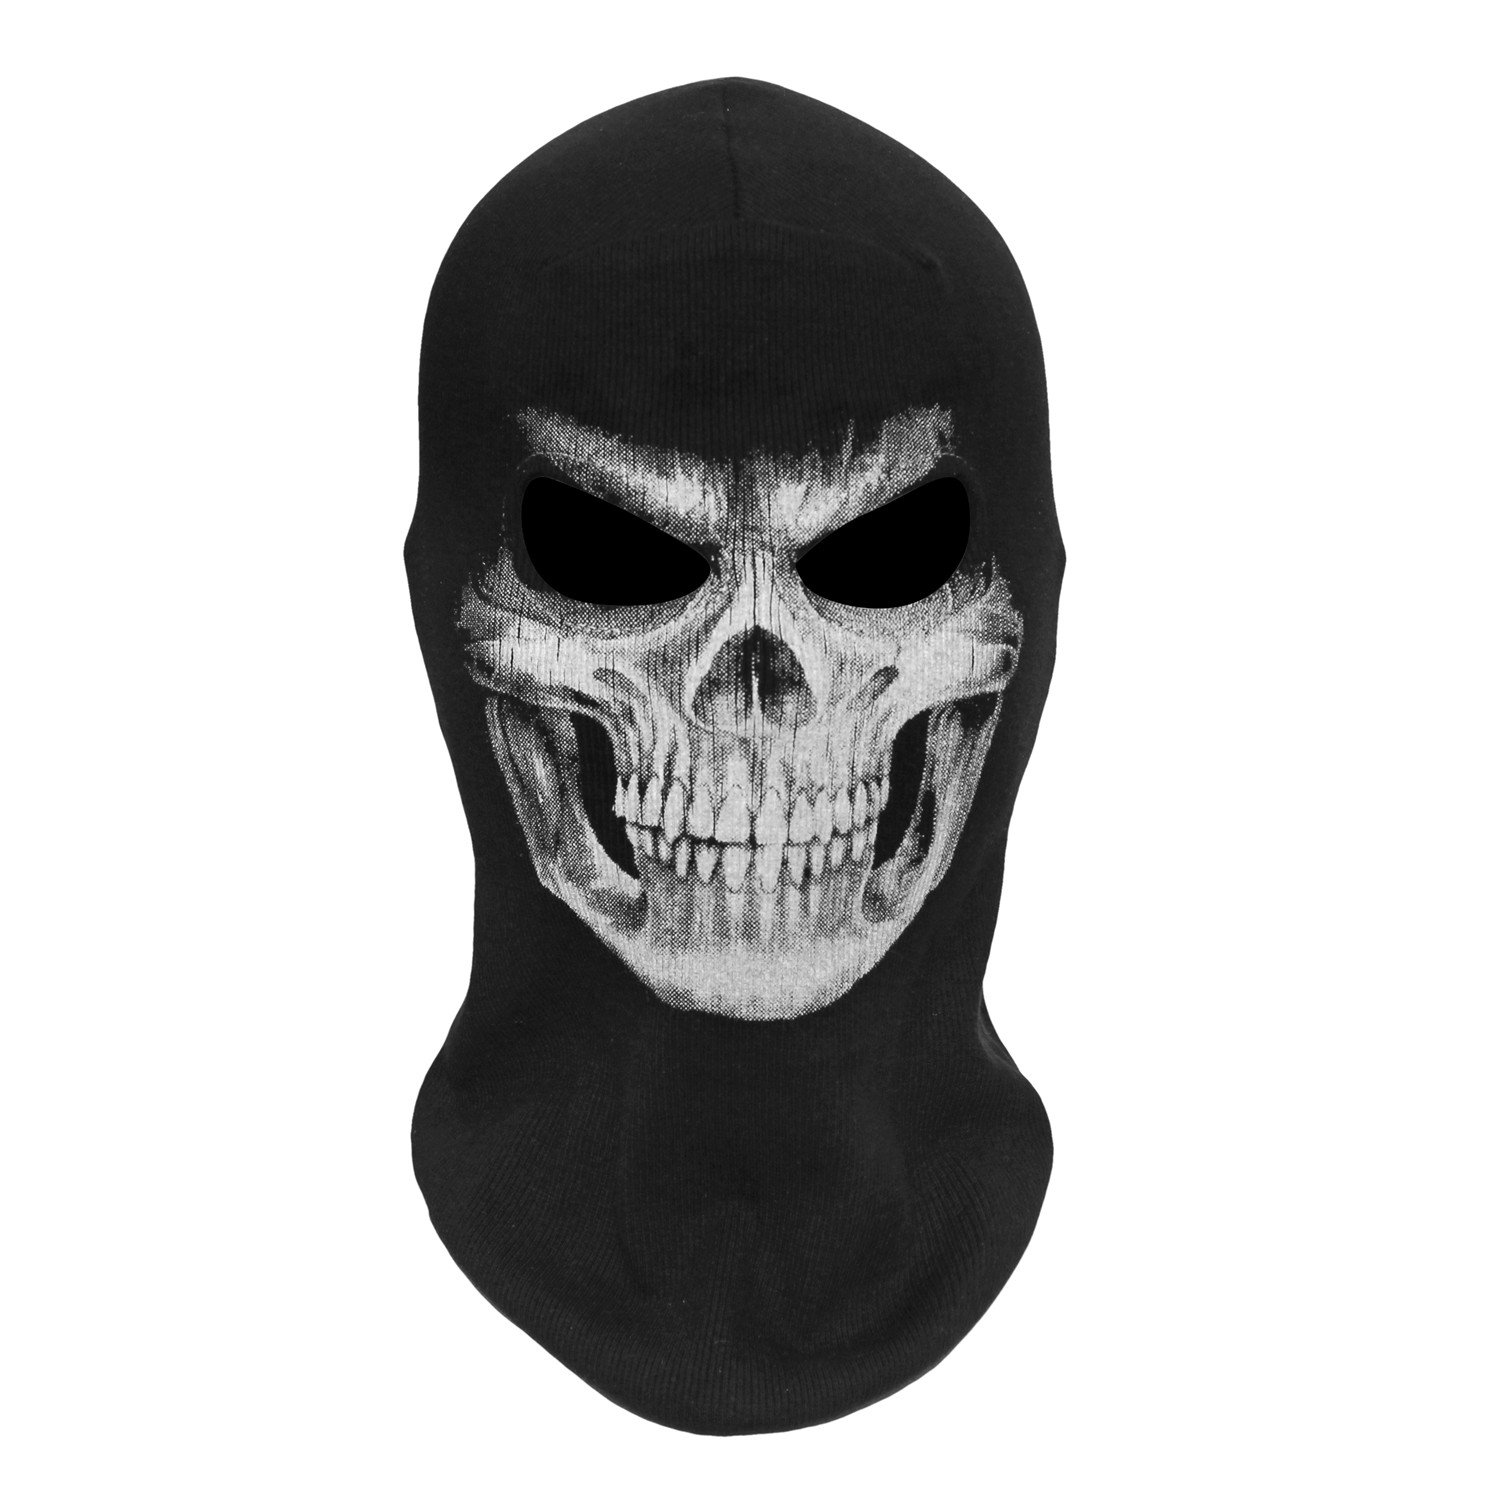 JIUSY Thick Skeleton Skull Ghost Death Halloween Balaclava Face Mask for Cosplay Costume product image